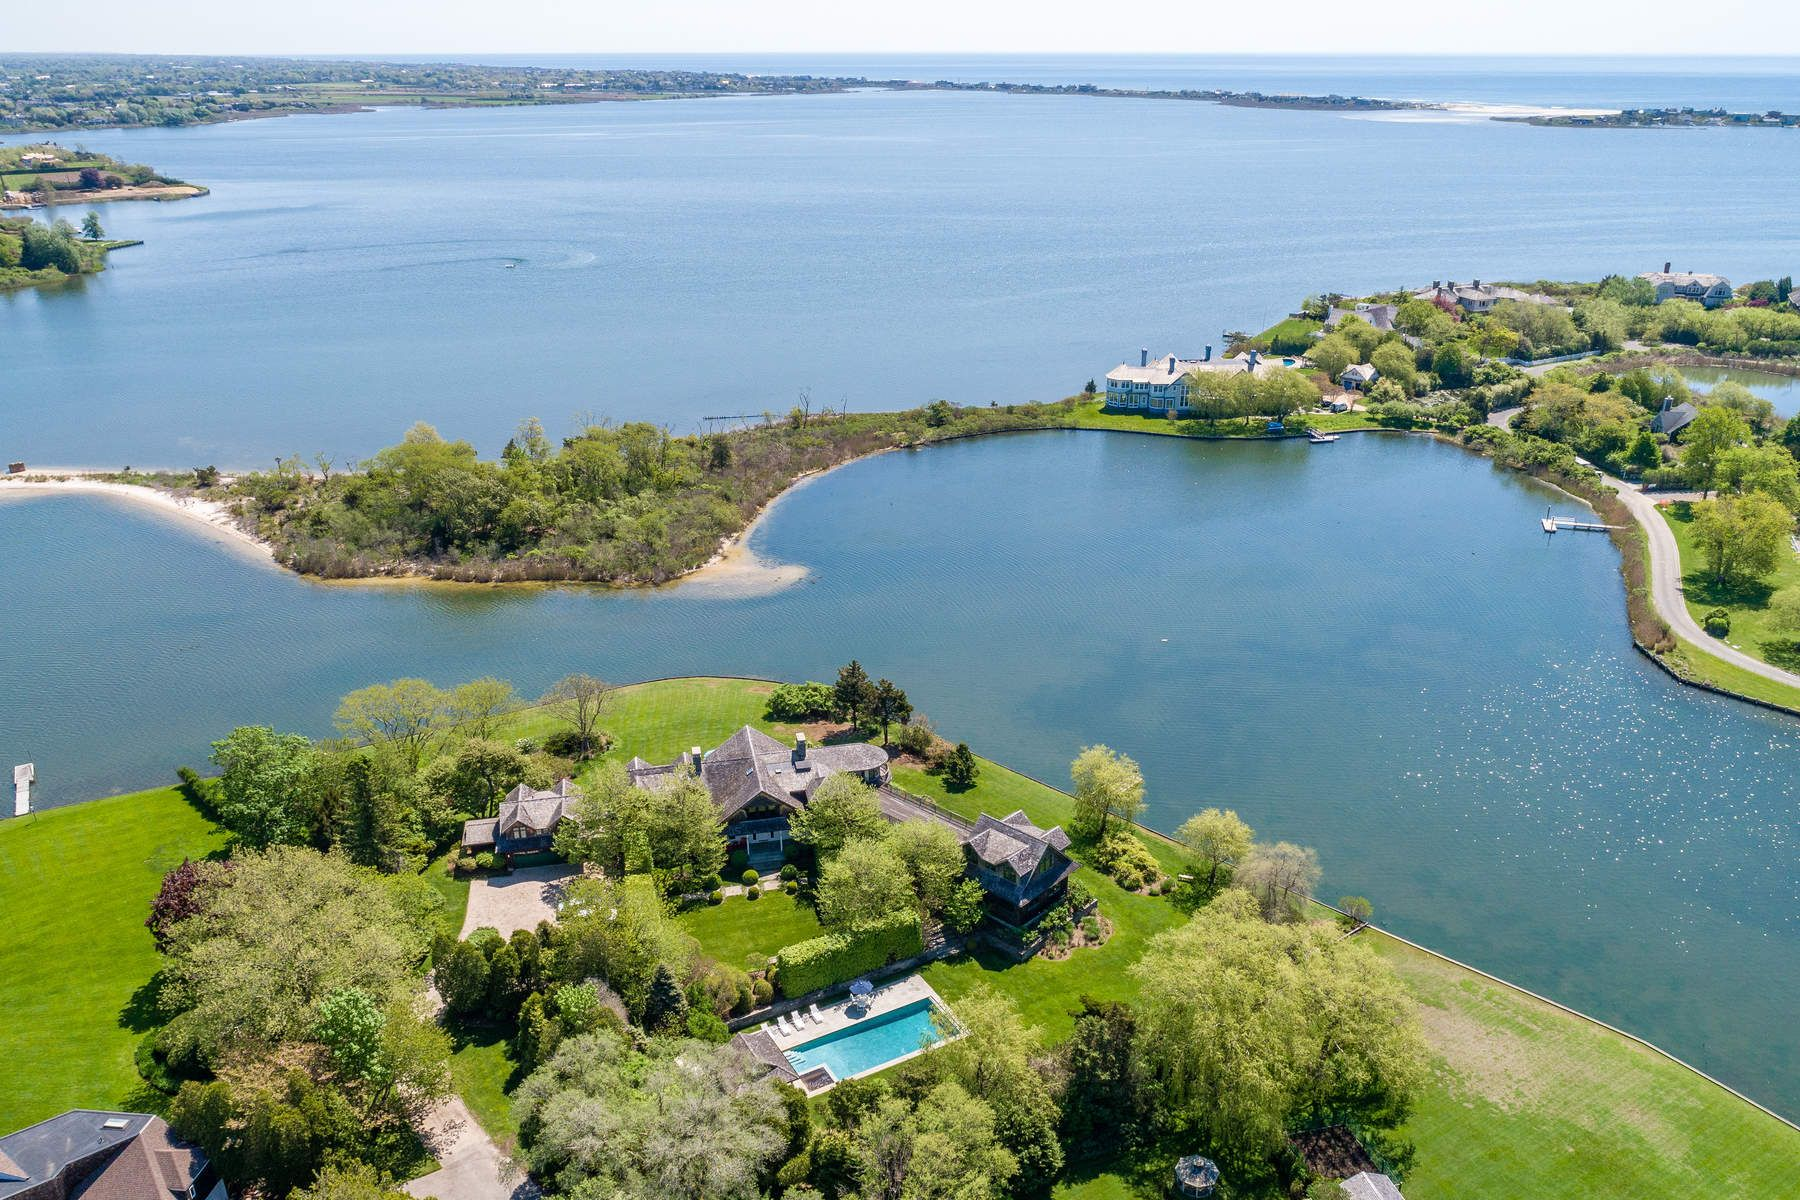 Property for Sale at WATER MILL ESTATE AREA WATERFRONT 64 Holly Lane Water Mill, New York 11976 United States